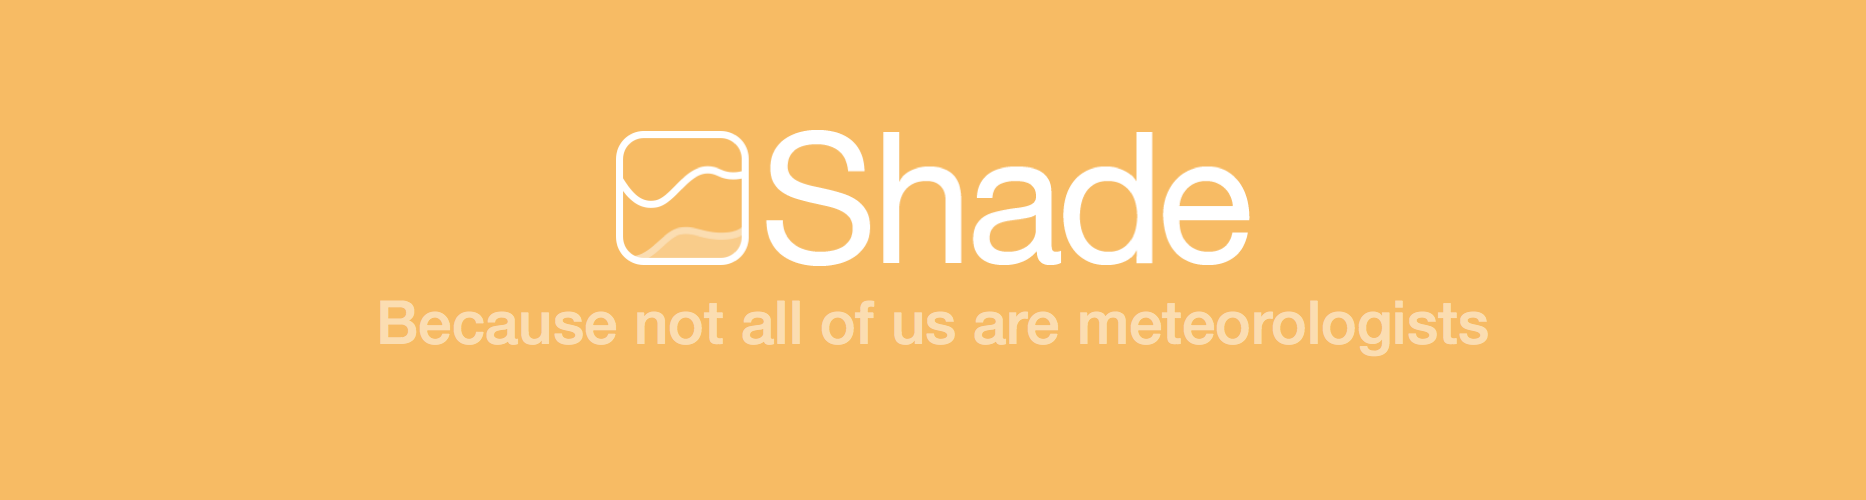 Shade for iOS 7